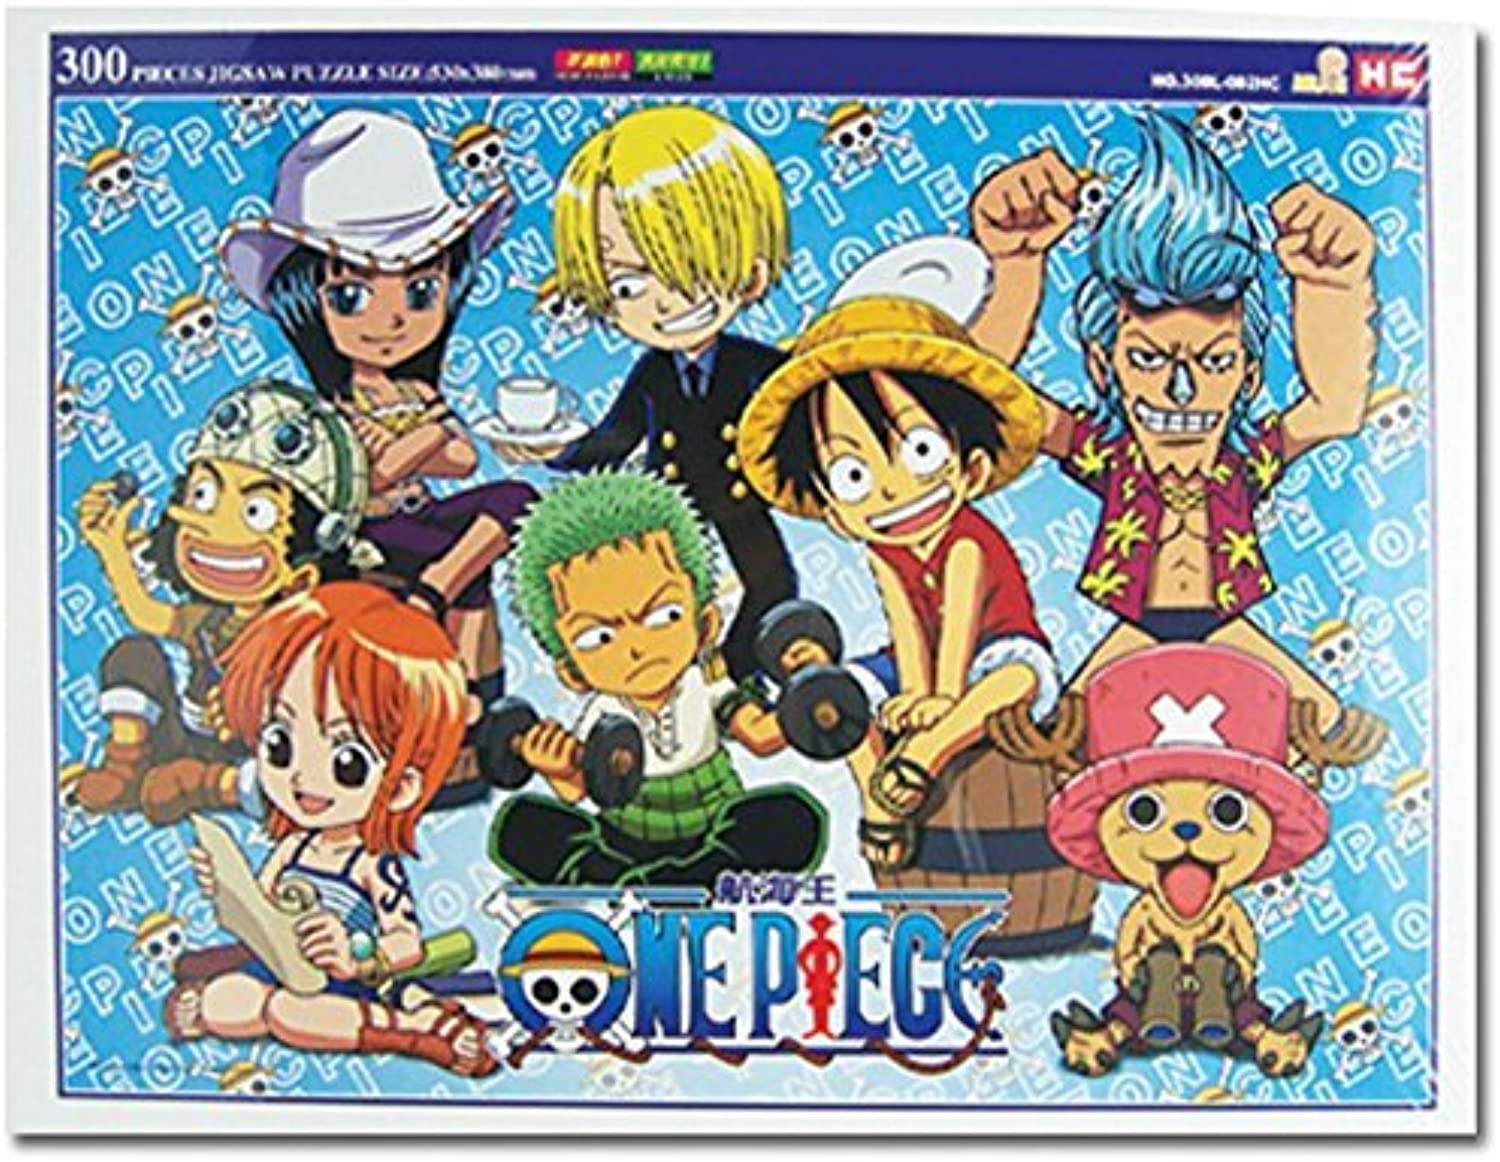 One Piece   bi paille Hat Pirates Group Image 300 Piece Puzzle by One Piece